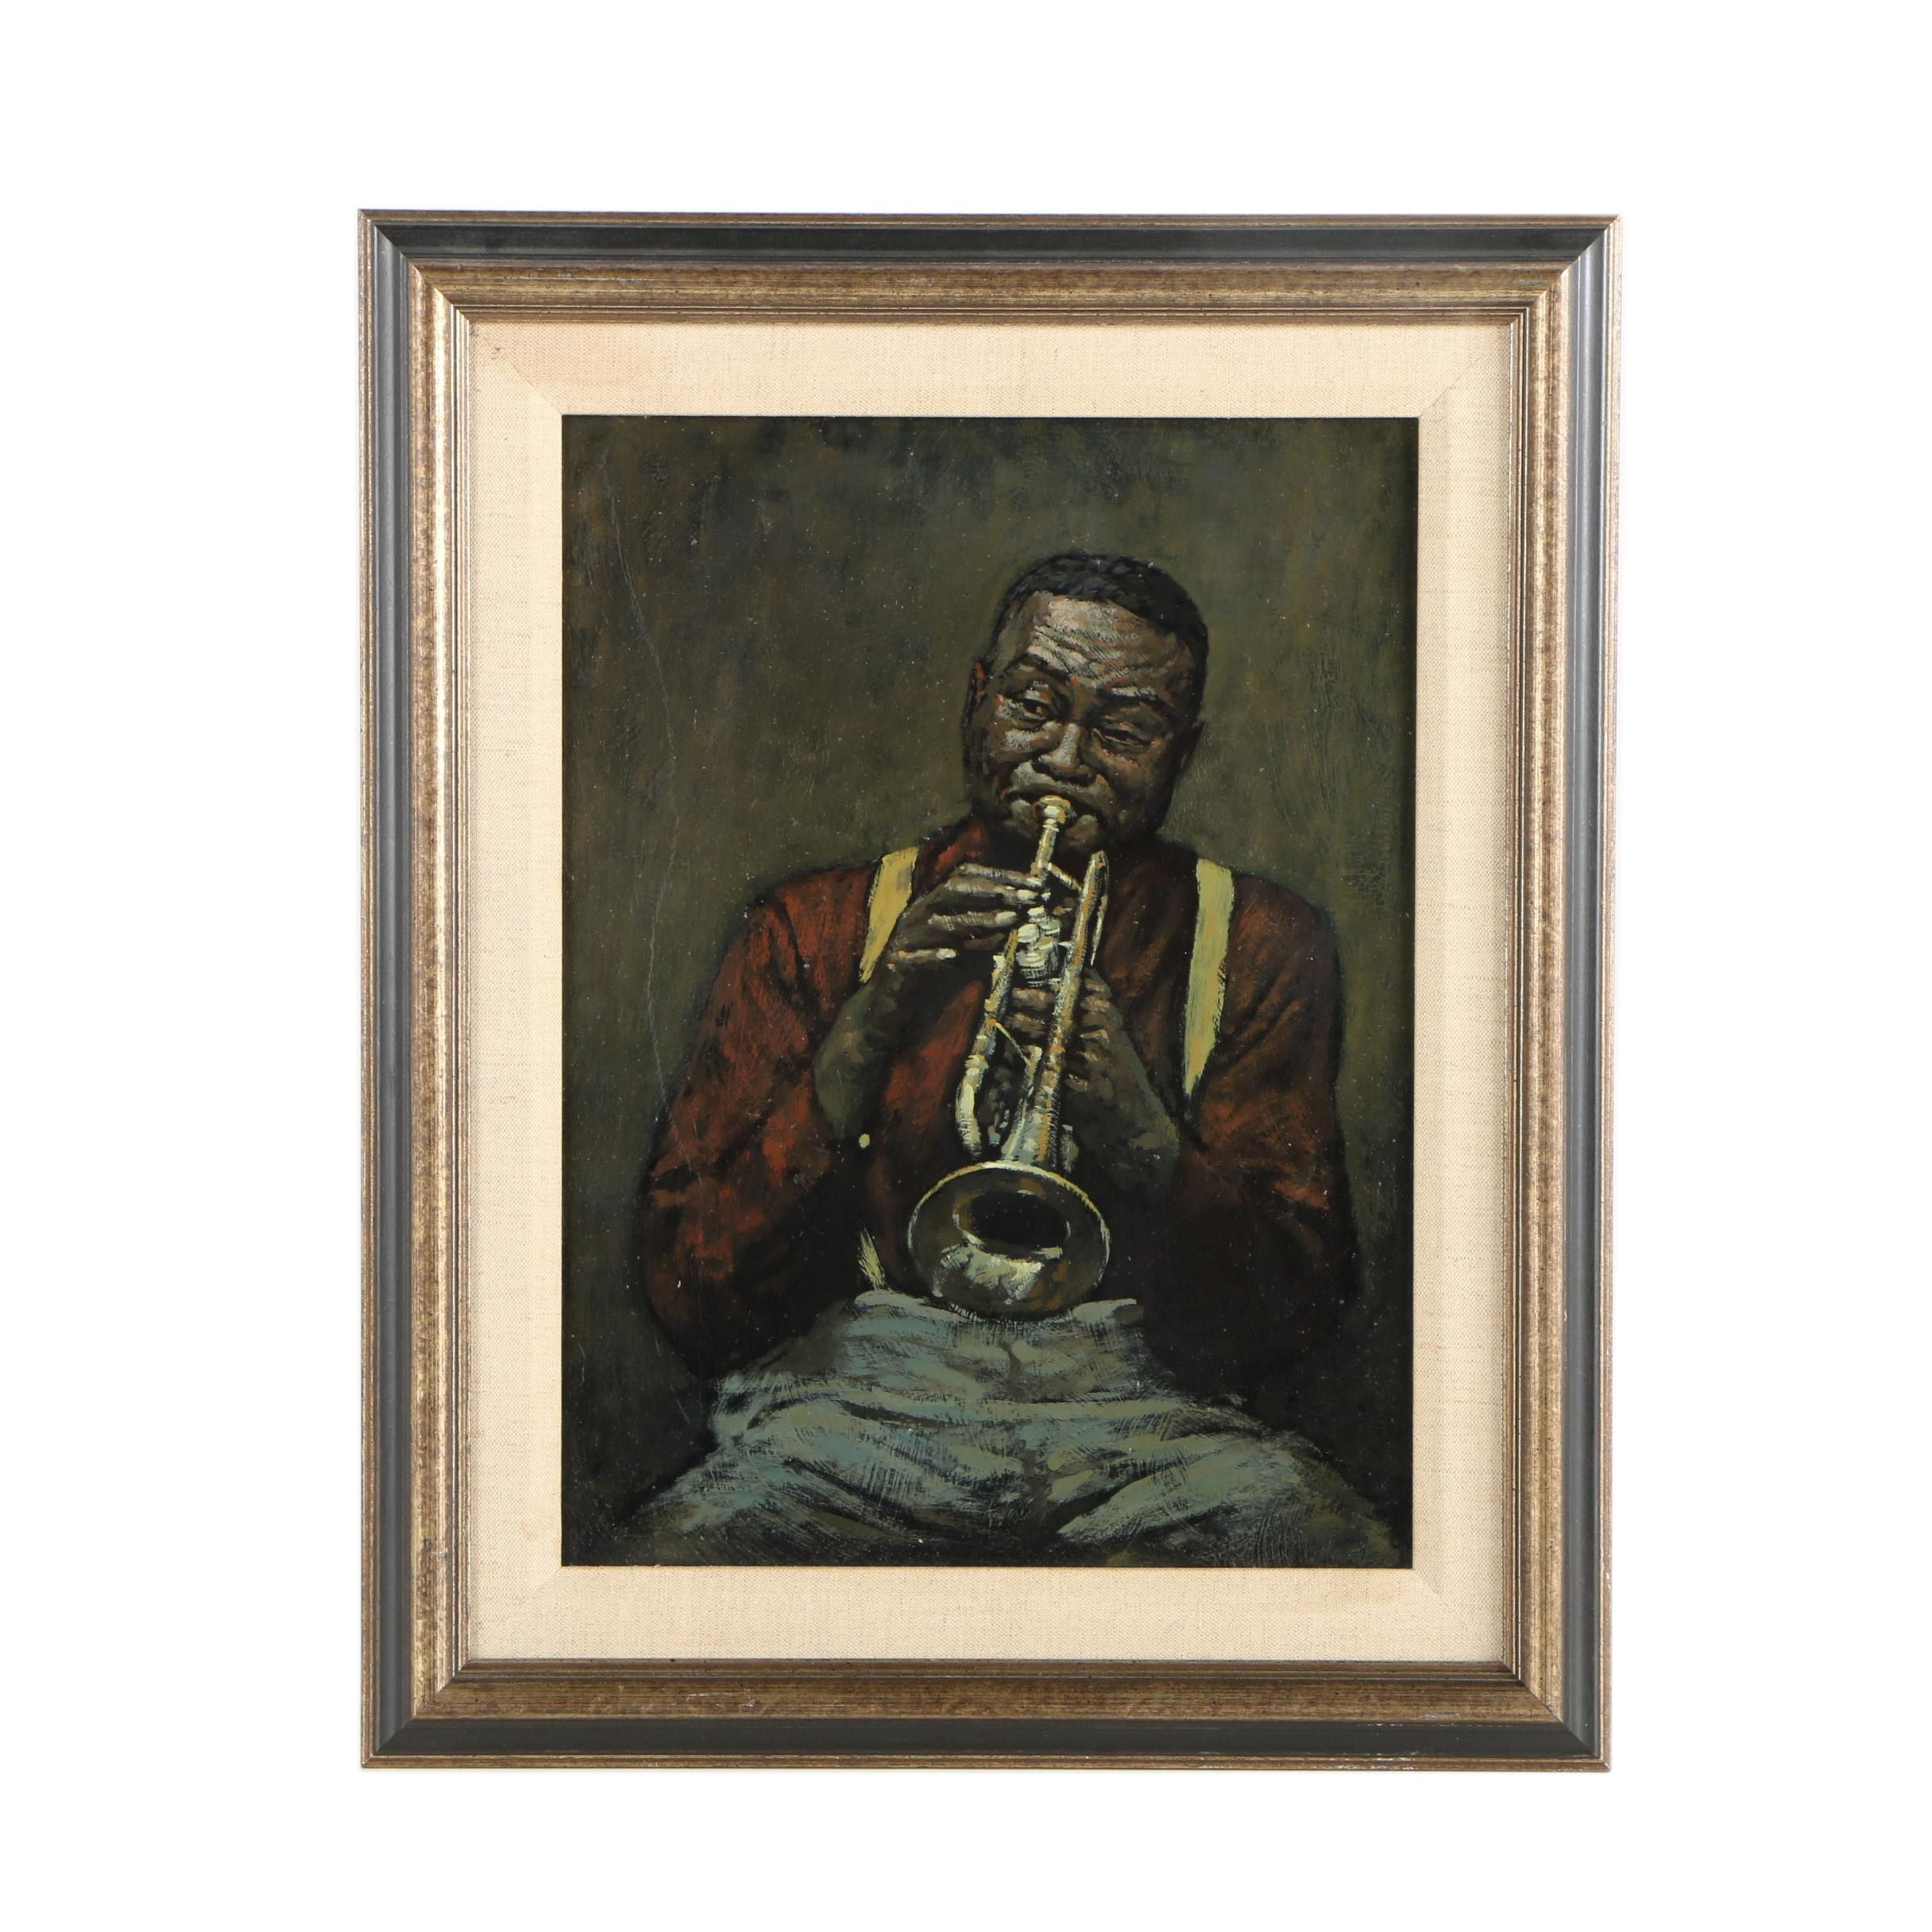 Circa 1960s Oil on Board Painting of Trumpet Player